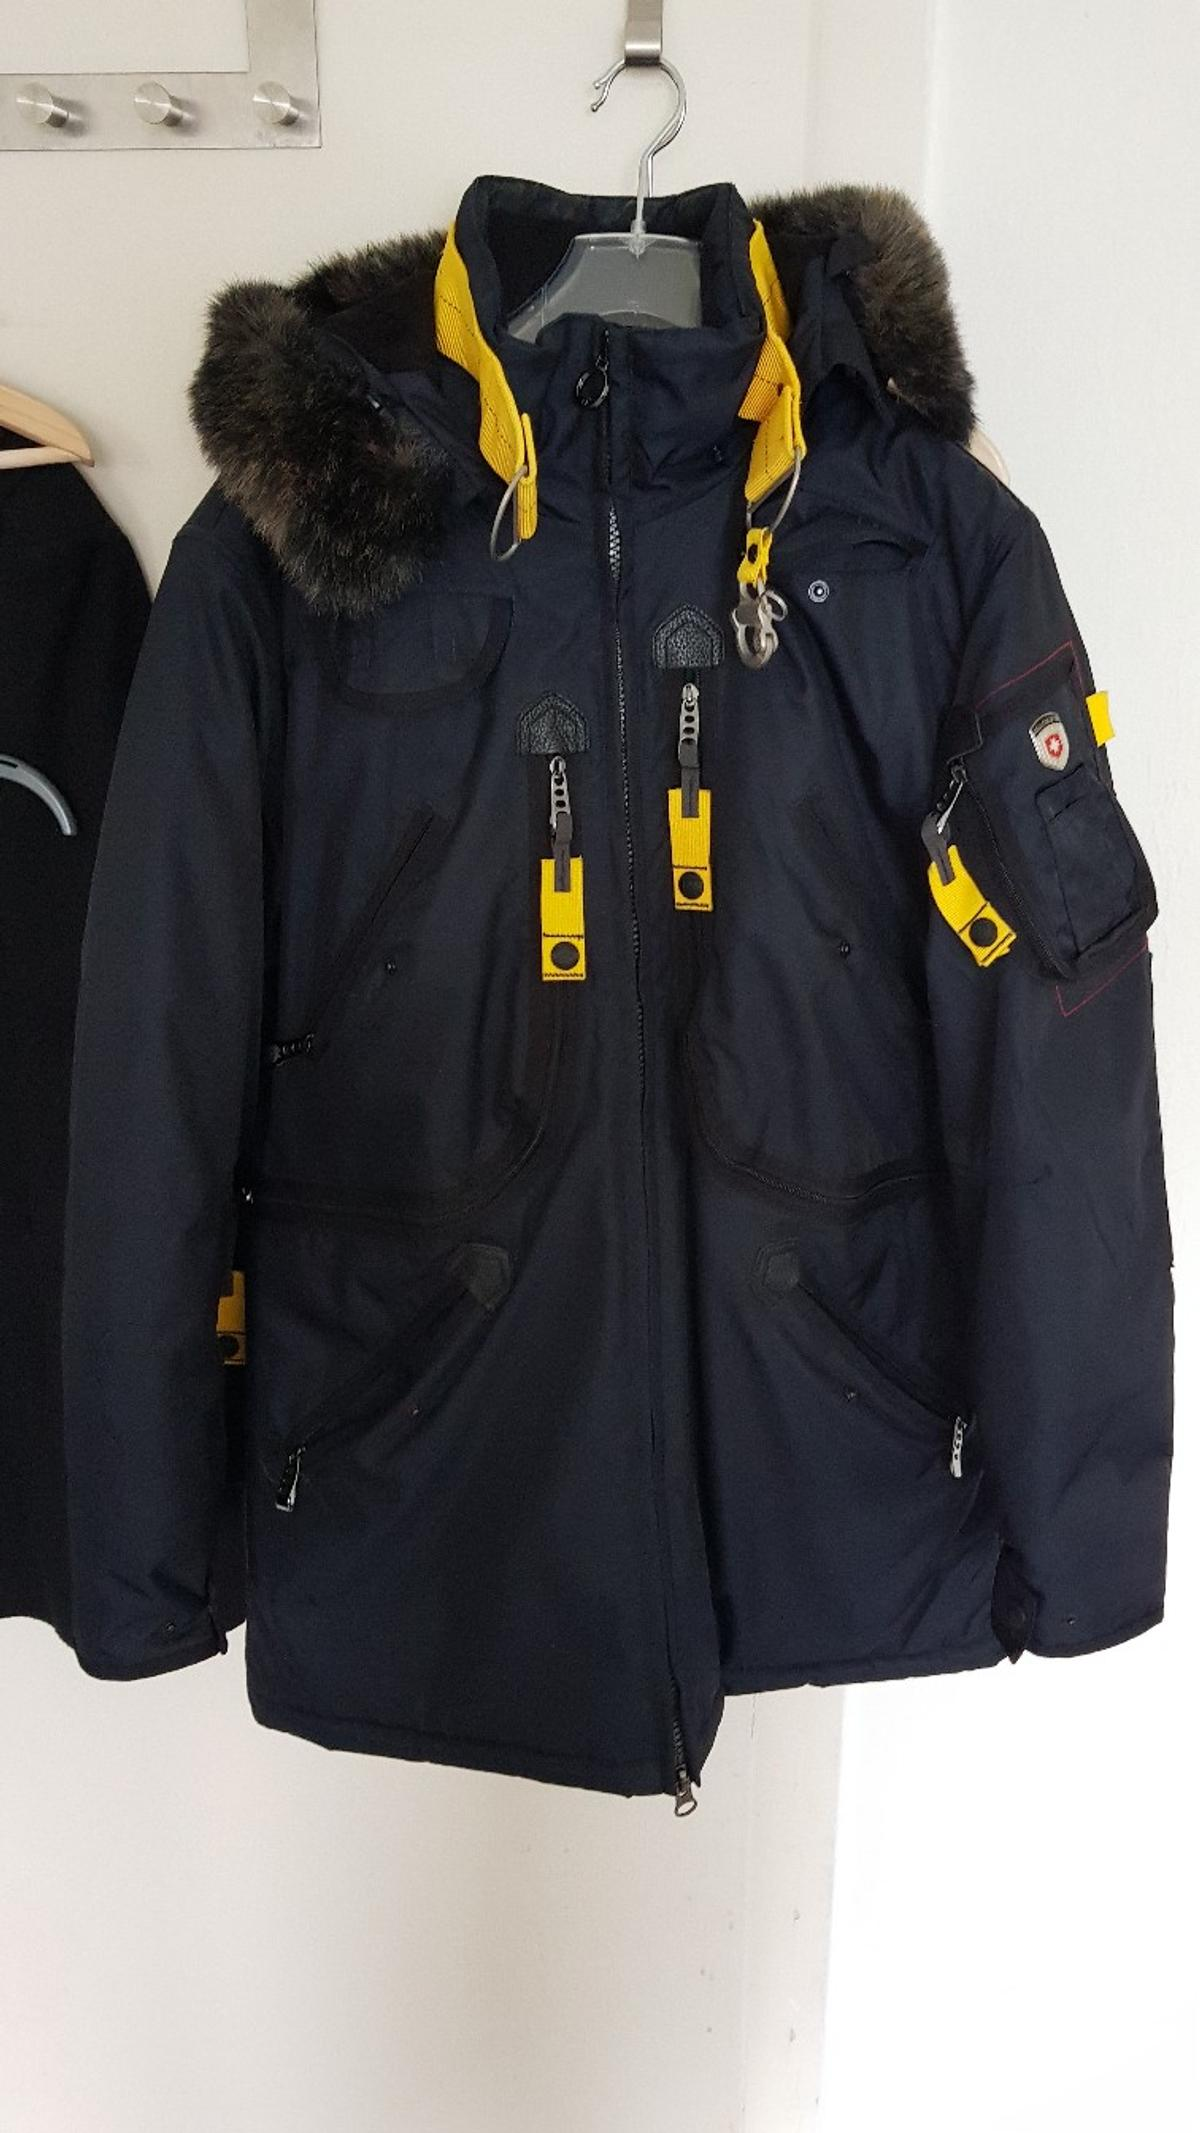 Wellensteyn Rescue Team Jacke